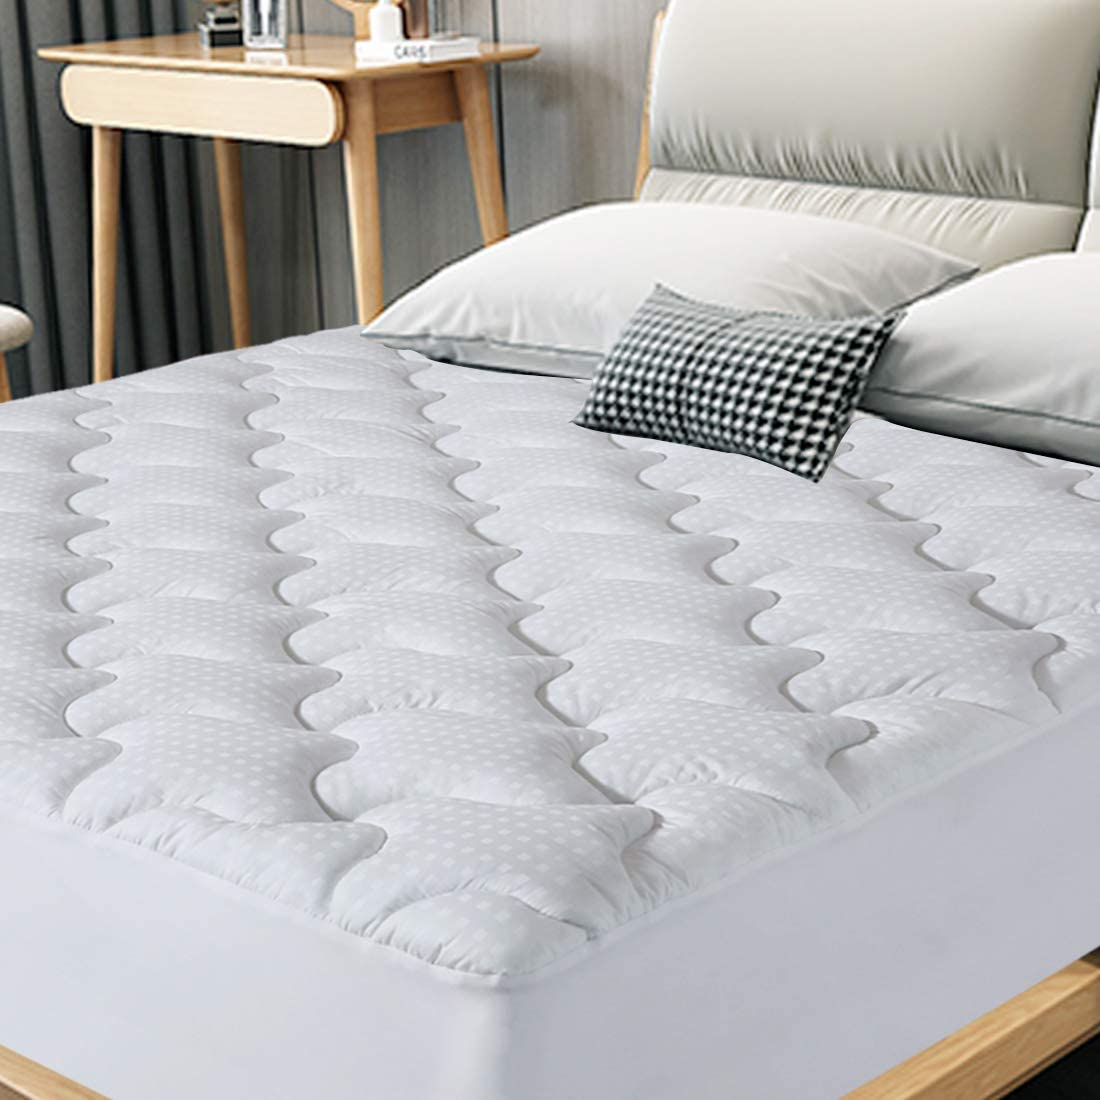 Twin 2021 autumn and winter new XL Size Mattress Pad Cotton Top Pillow Quilt Max 90% OFF Cover